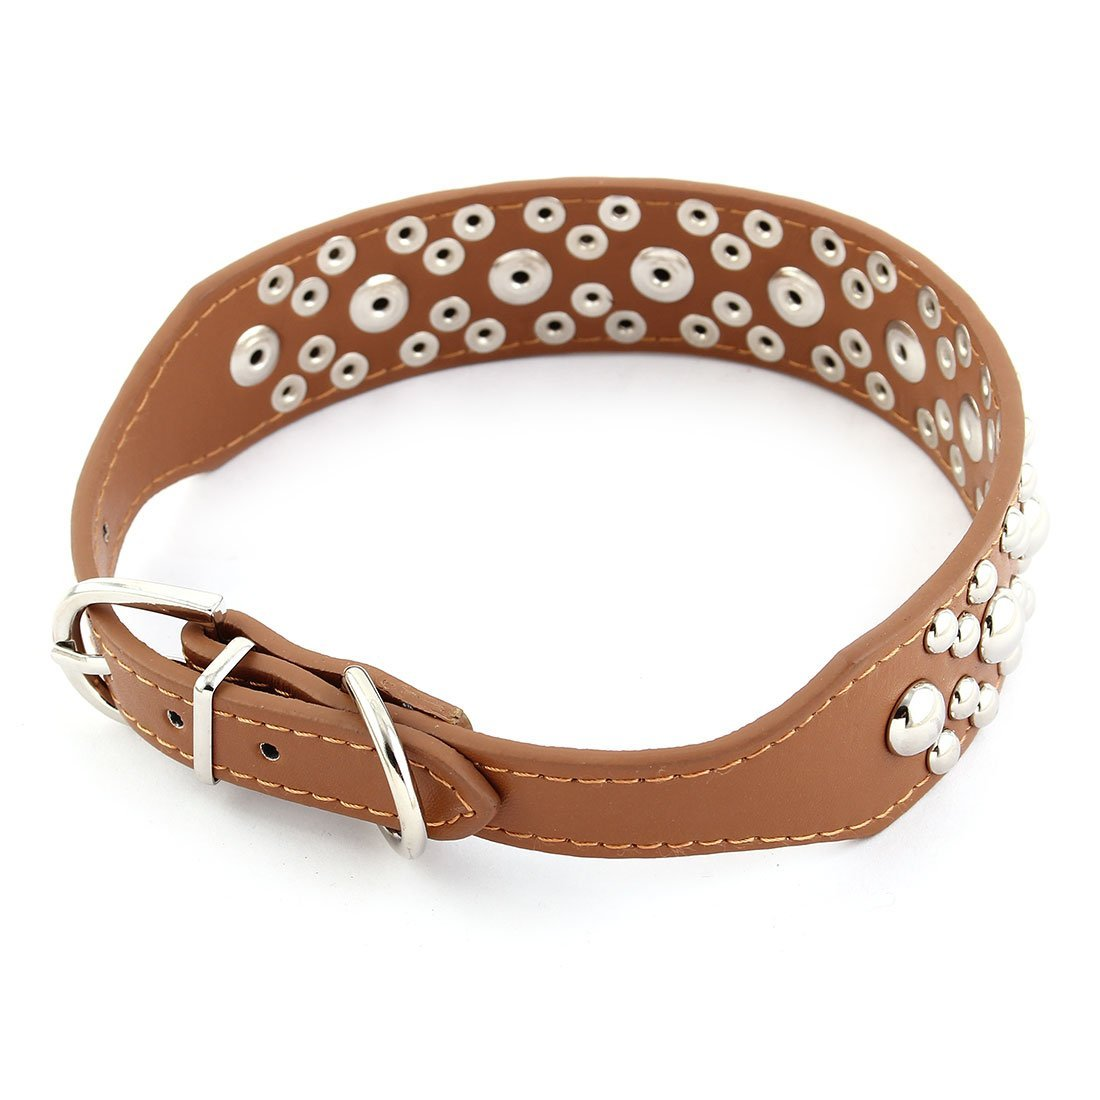 Amazon.com : DealMux metal fivela único pino Faux Leather Rivet Decoração Pet Dog Correia de pescoço Collar M Brown : Pet Supplies